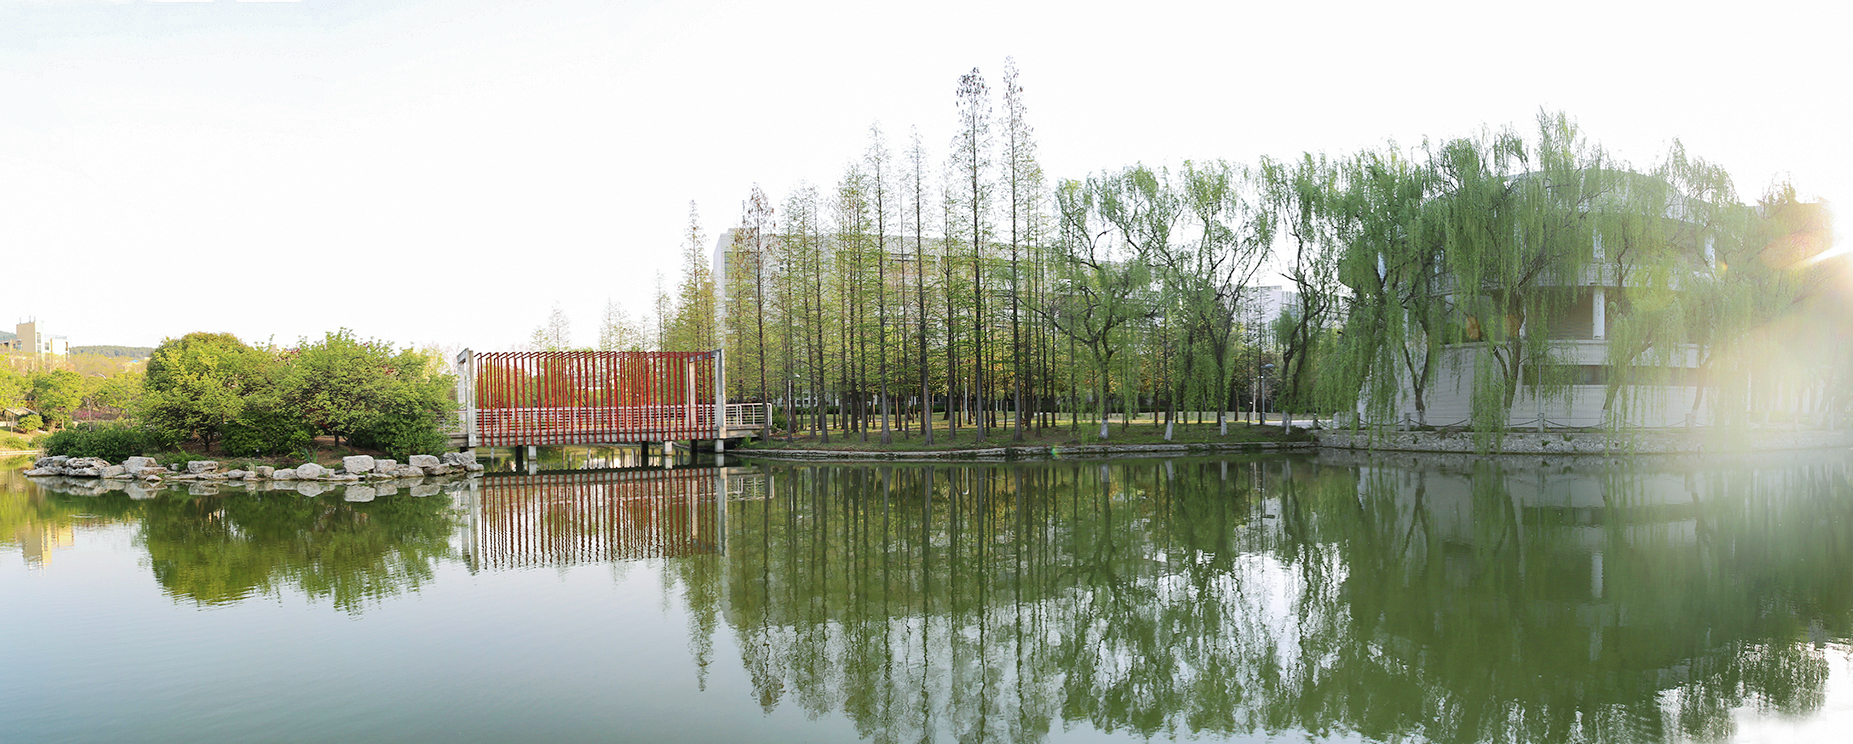 China-University-of-Mining-and-Technology-campus-view